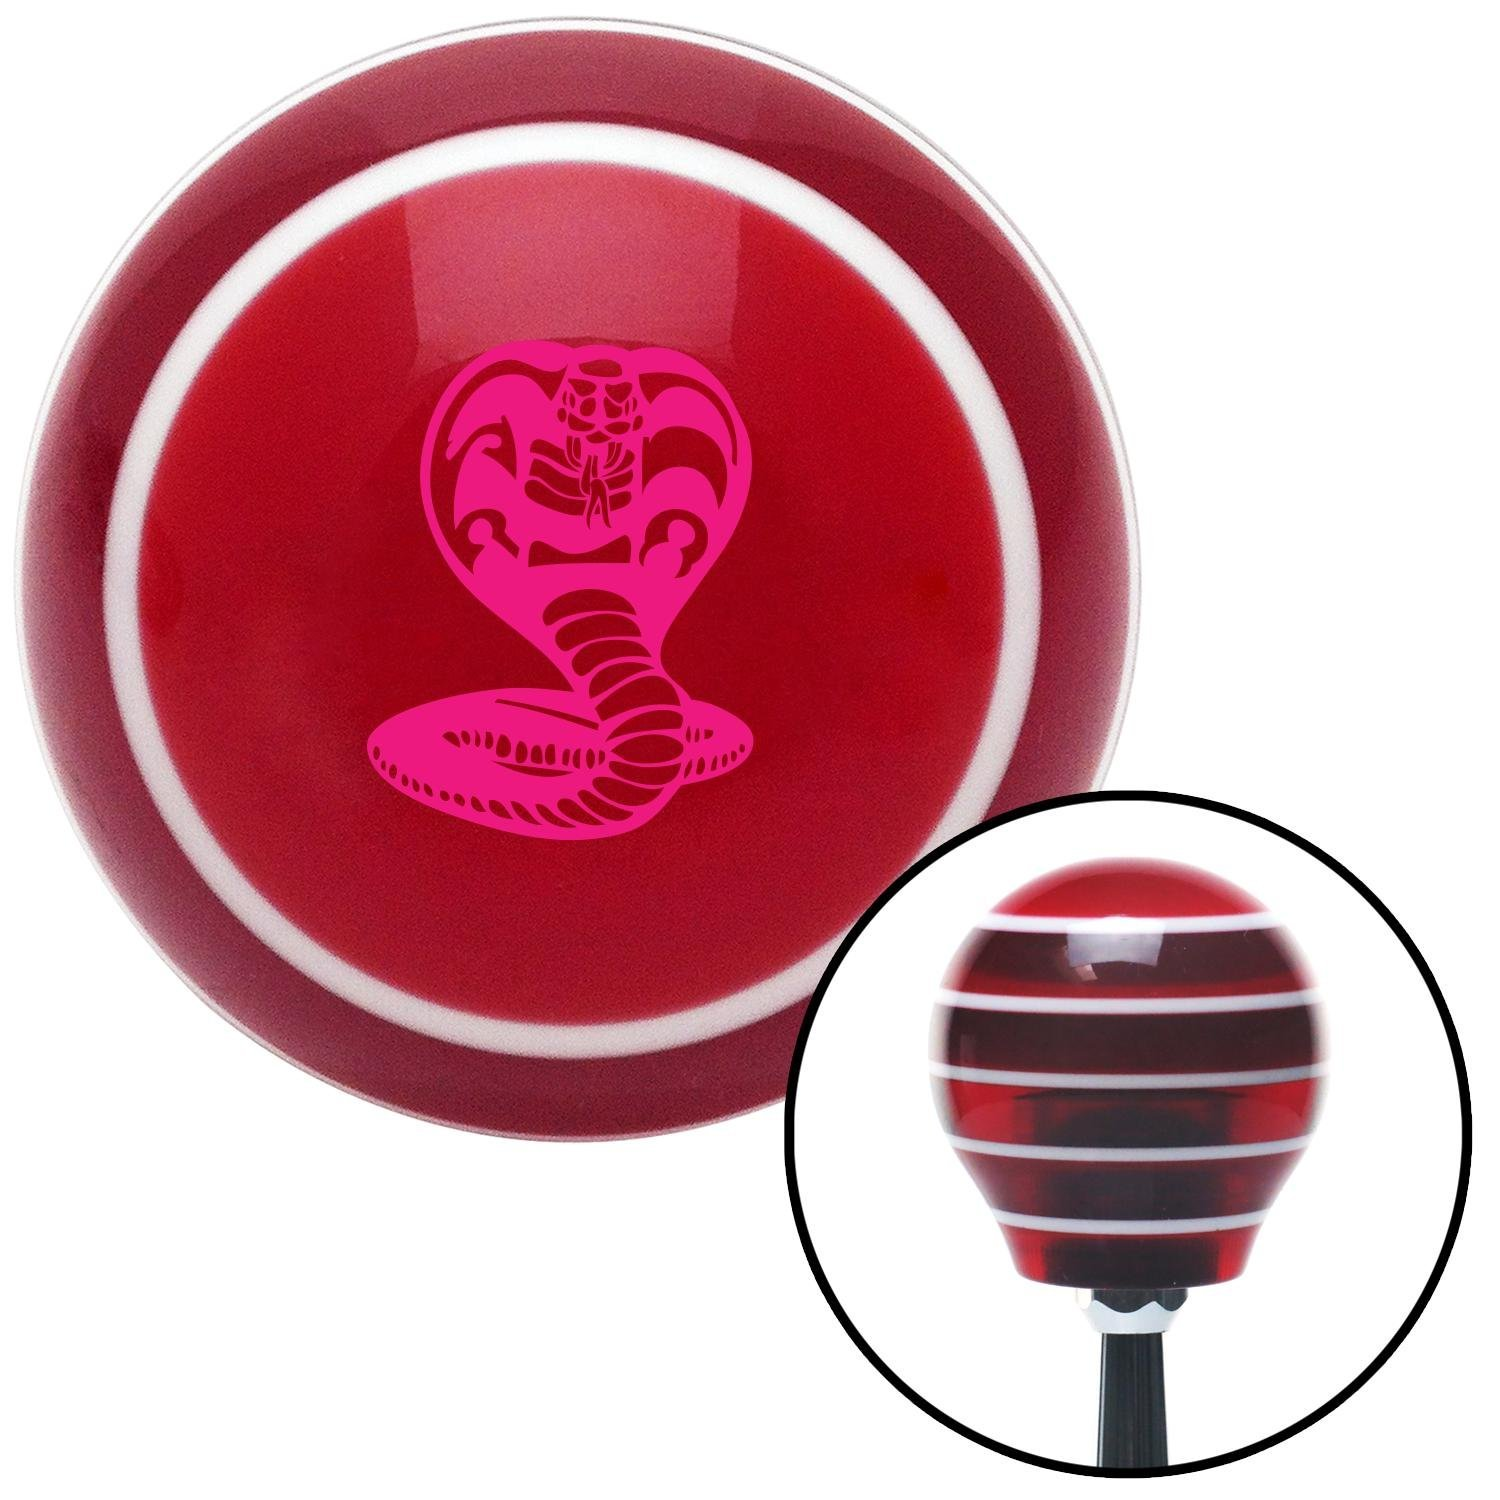 American Shifter 111629 Red Stripe Shift Knob with M16 x 1.5 Insert Pink King Cobra